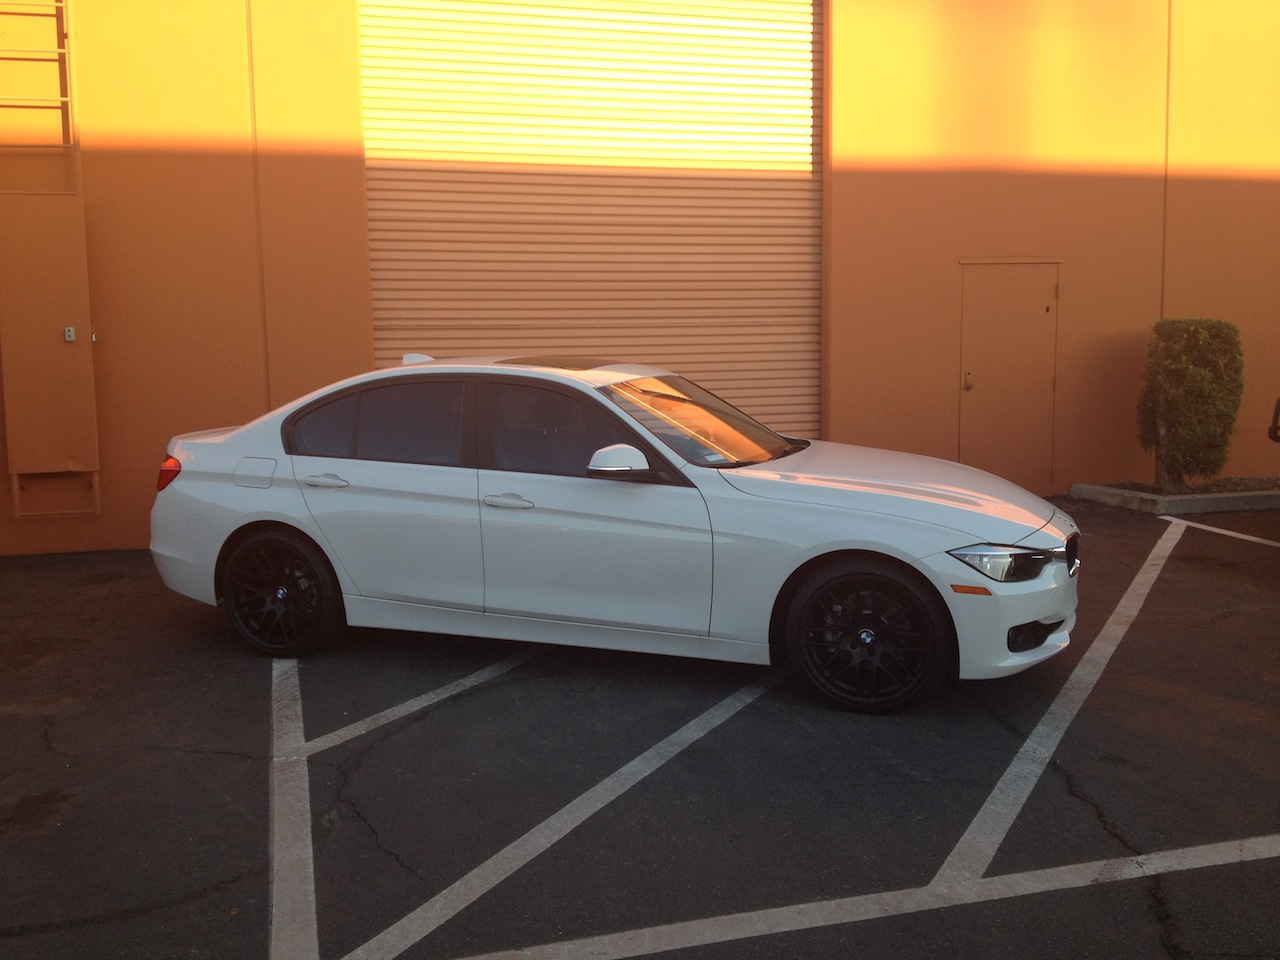 My Aw F30 328i Mods To Come